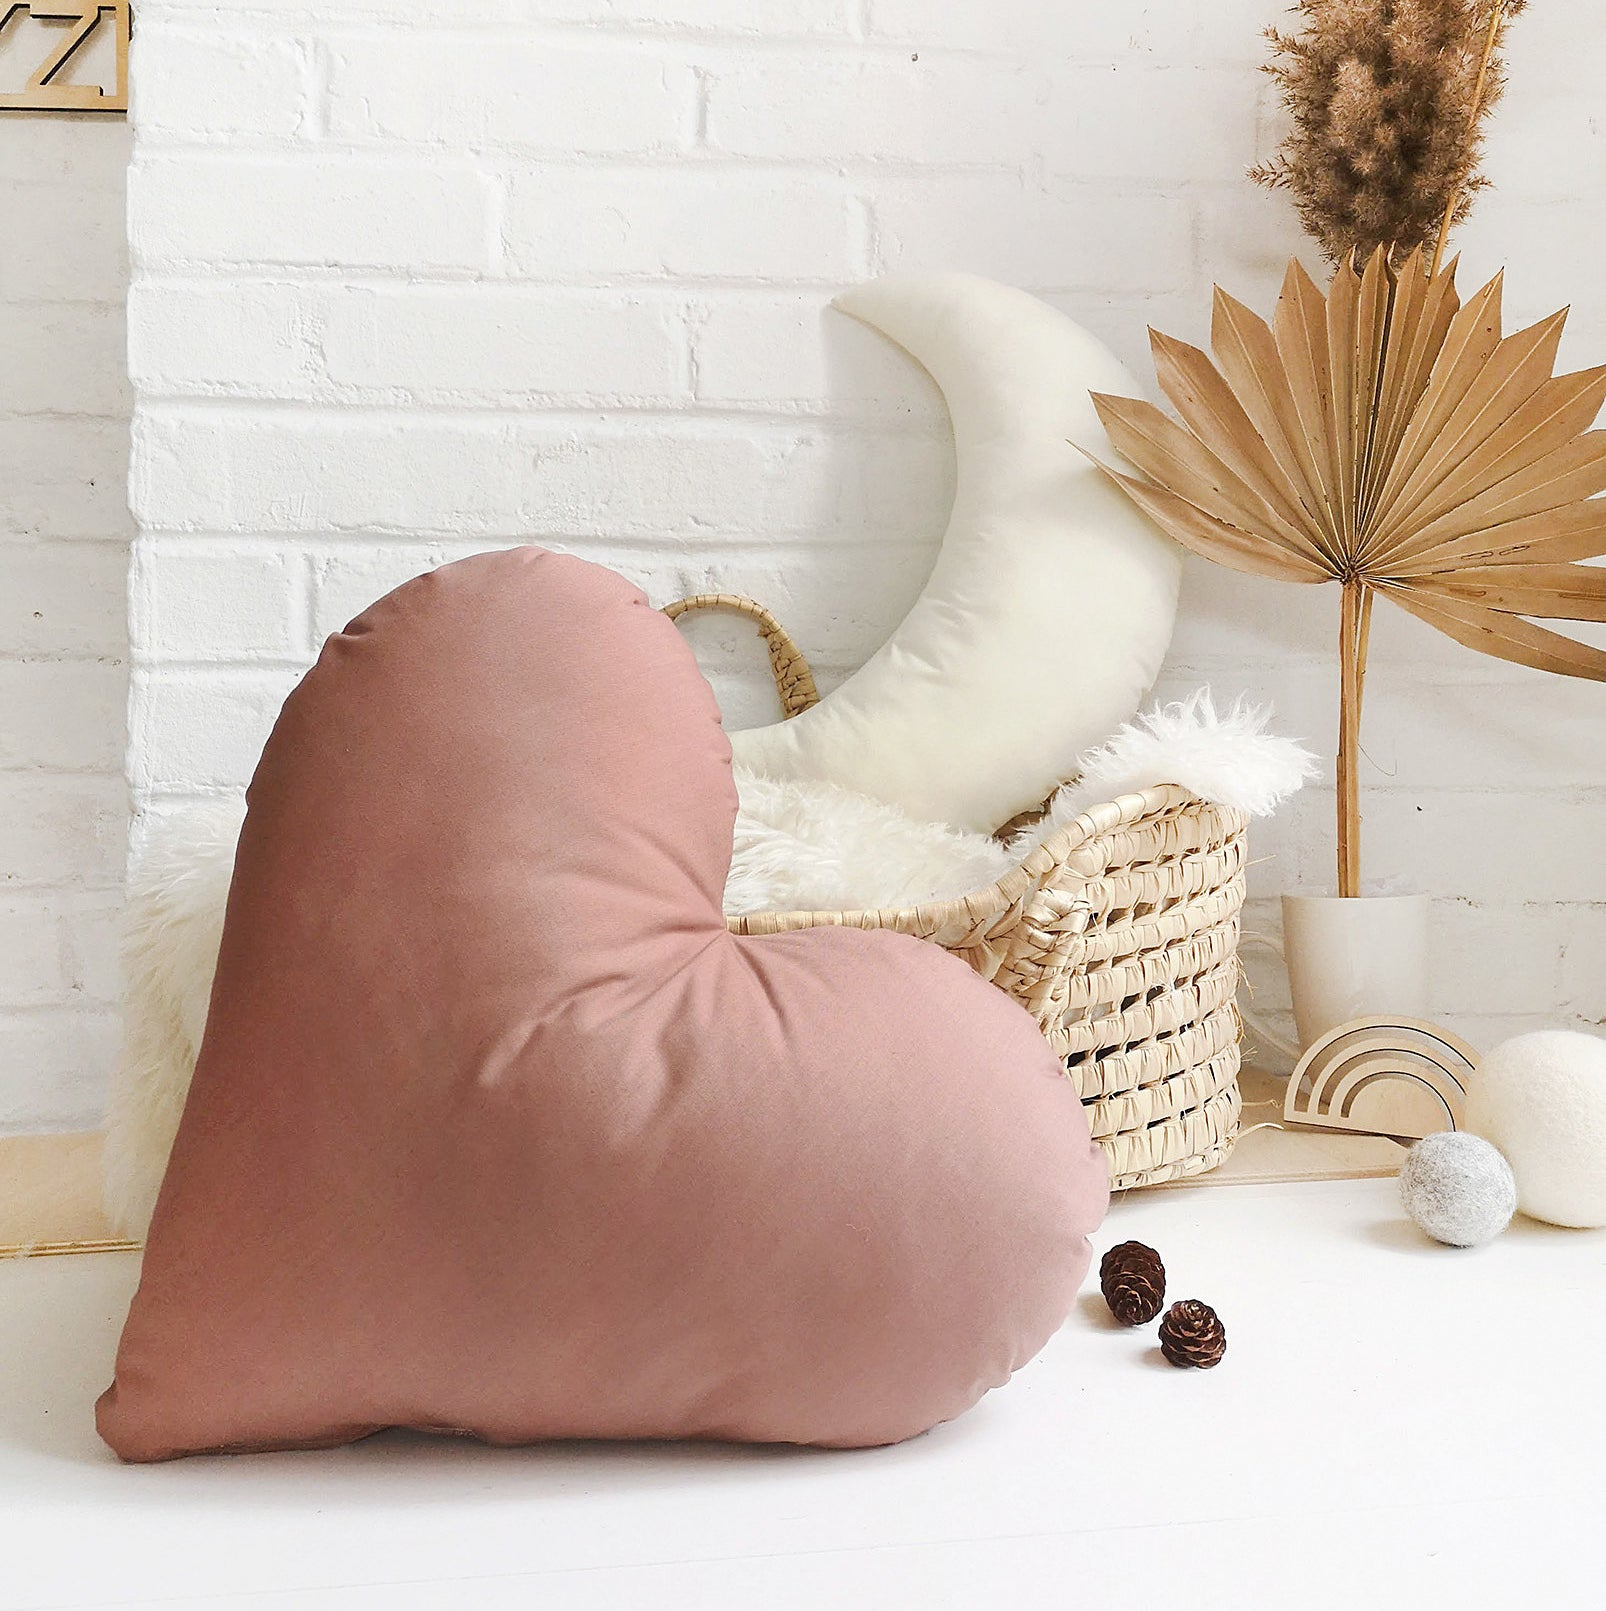 A heart-shaped pillow in a kid's room